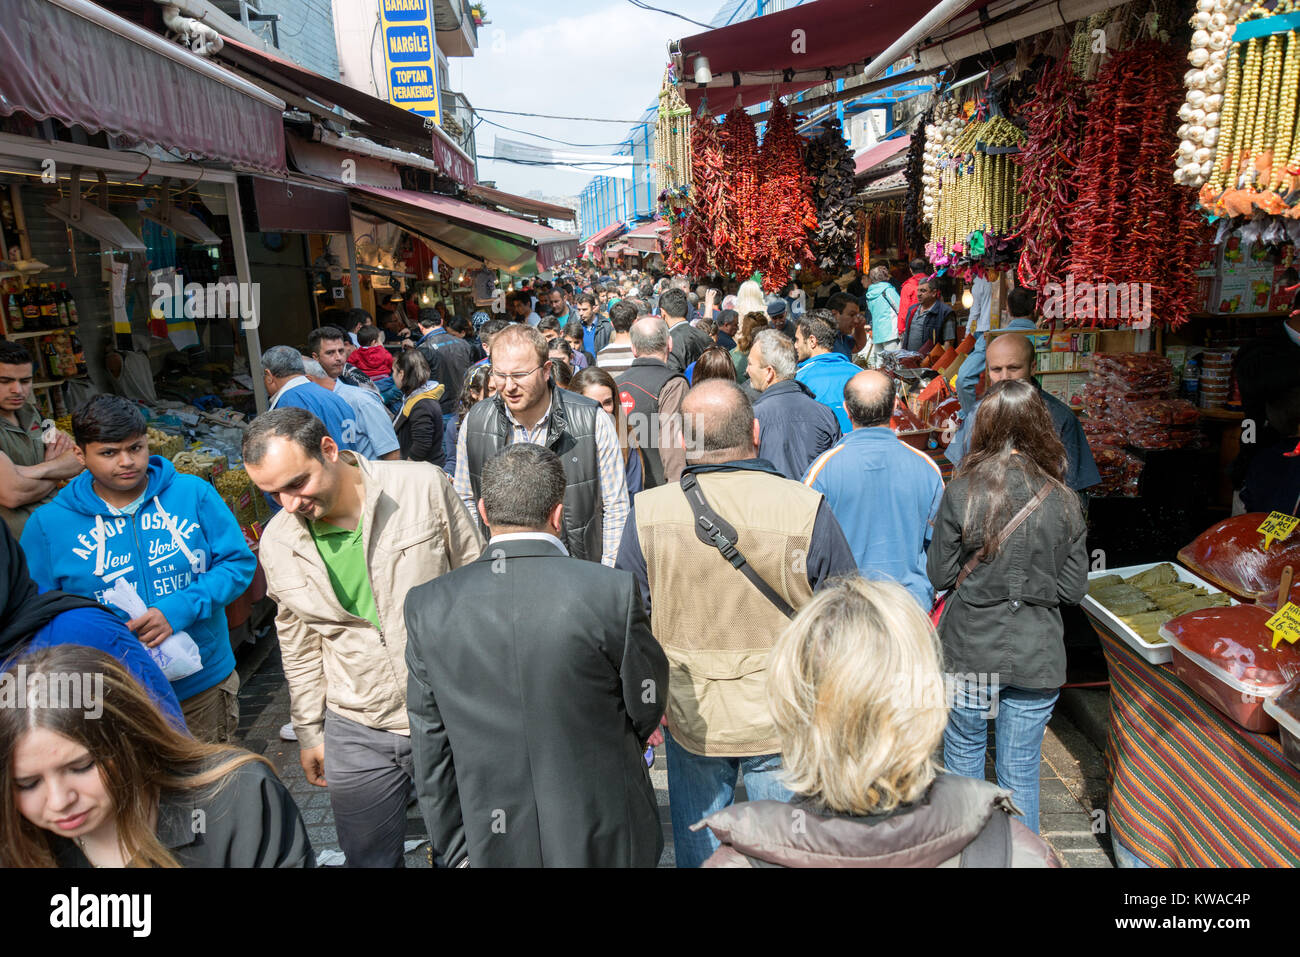 APRIL 27,2014 ISTANBUL TURKEY.Tahtakale is the one of the big public bazaars in Istanbul province. - Stock Image